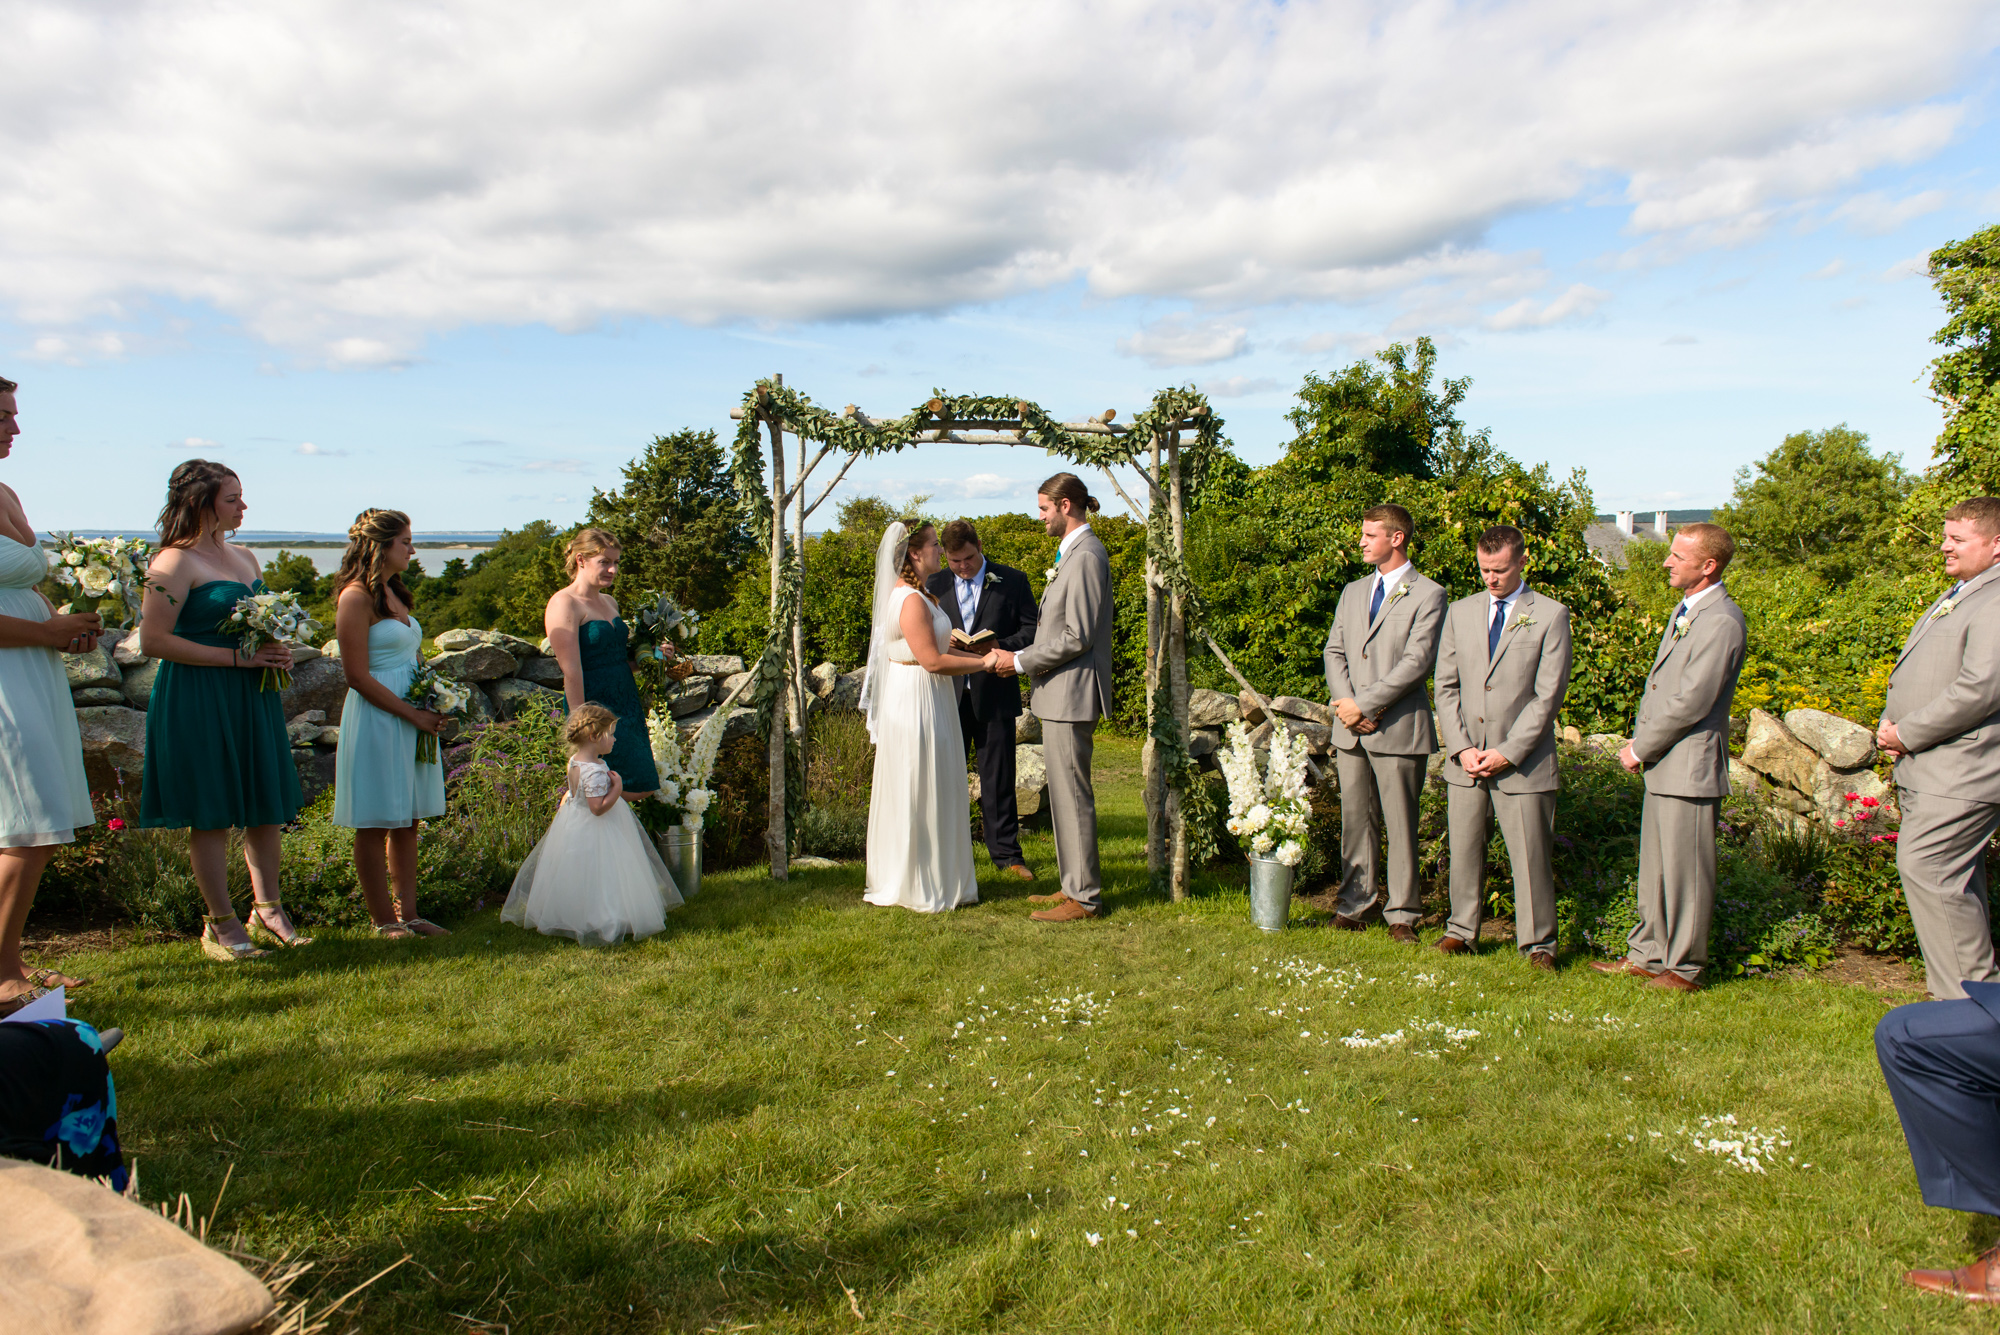 A wedding ceremony overlooking the Vineyard Sound at The Tower House in Chilmark photo by David Welch Photography